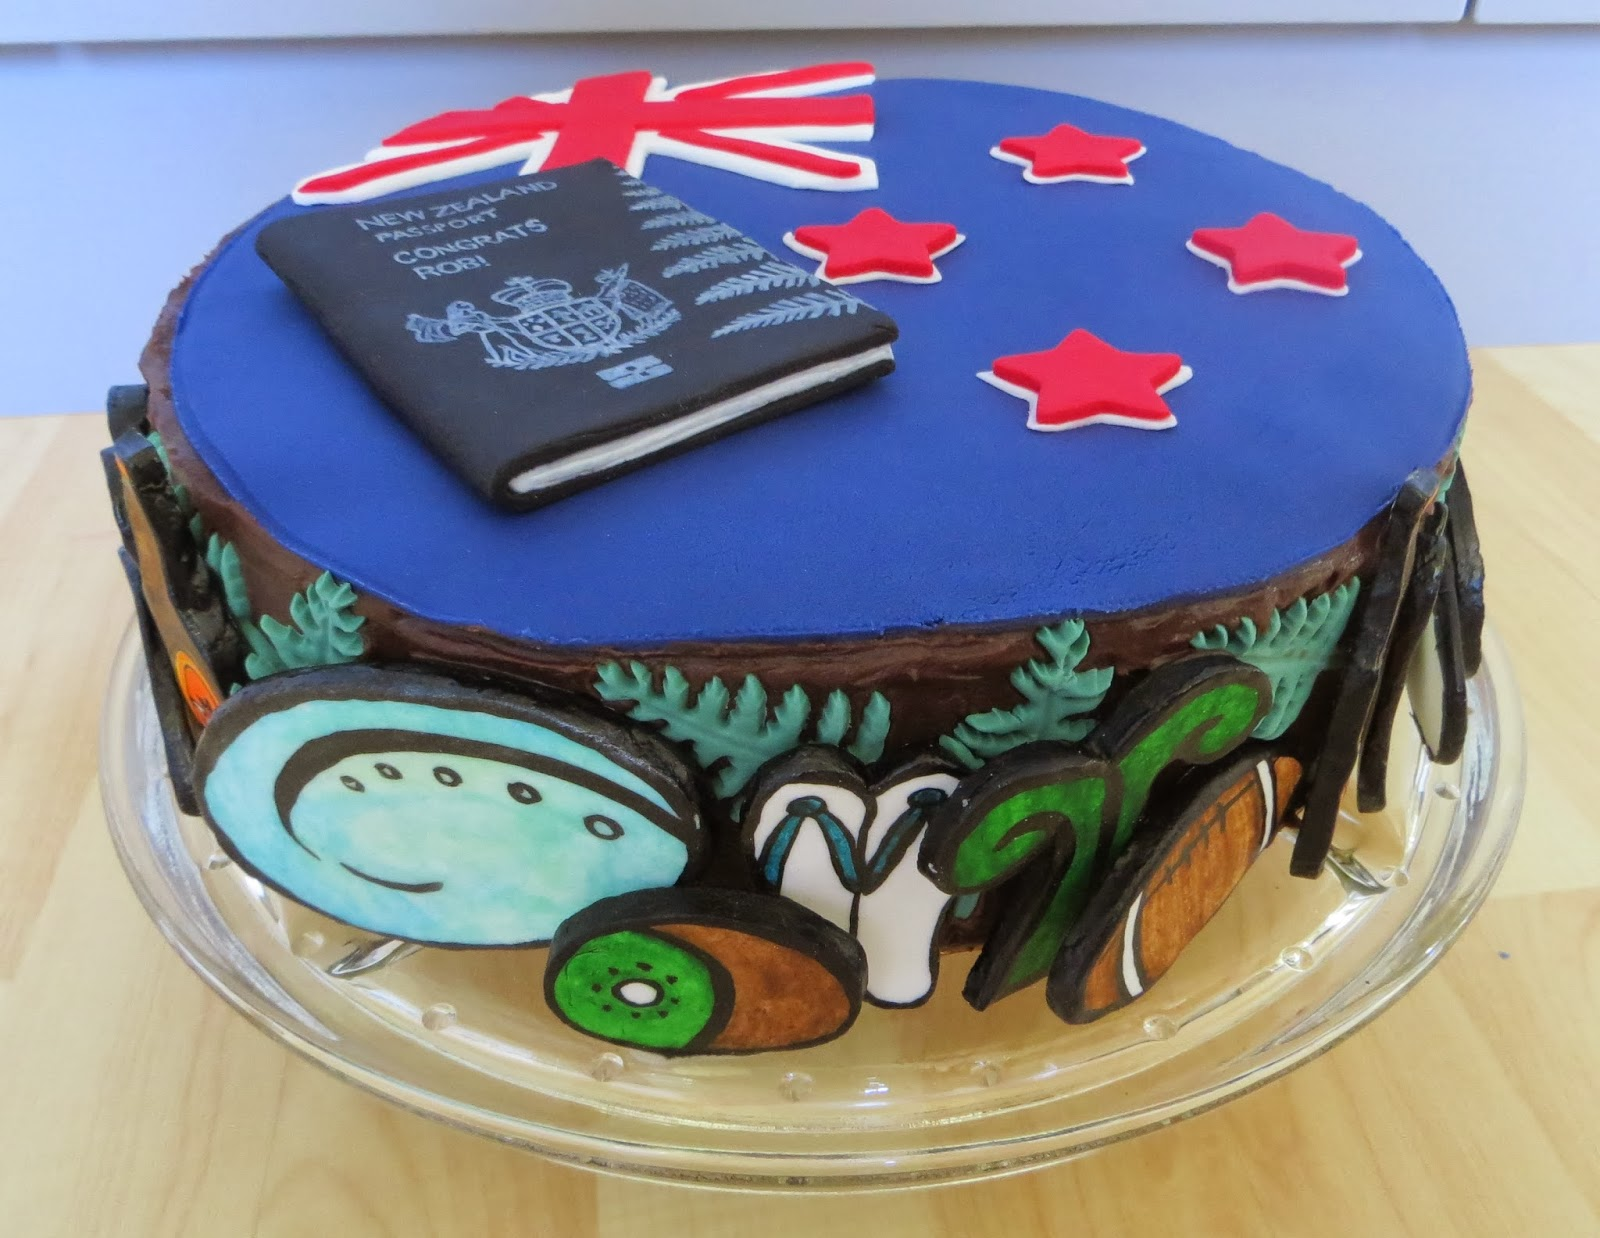 Cake Decorating Gisborne Nz : The Papoose Mamoose: Birthday Cakes